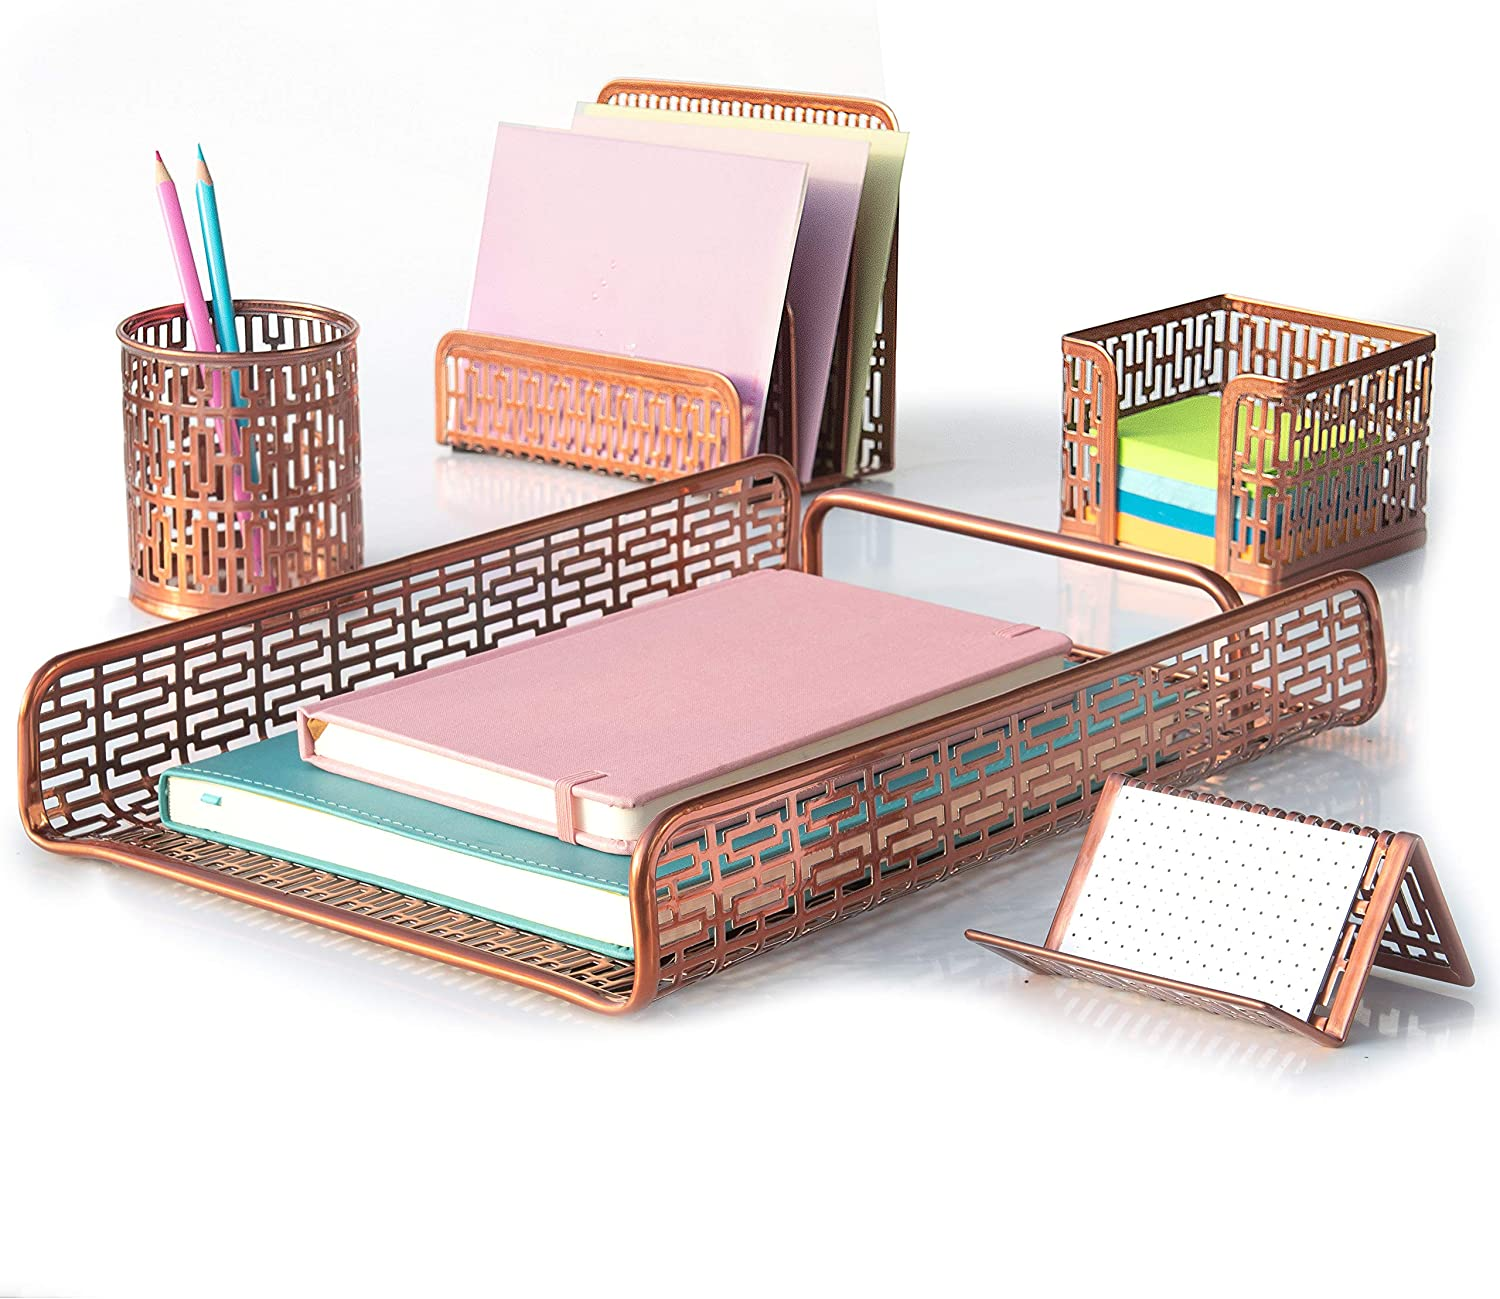 Hudstill Desk Organizer Set Home Office Supplies Accessories Decor with Paper Tray, Mail Organizer, Pen and Pencil Cup, Sticky Notes Holder and Business Card Holder or Cellphone Stand (Rose Gold)